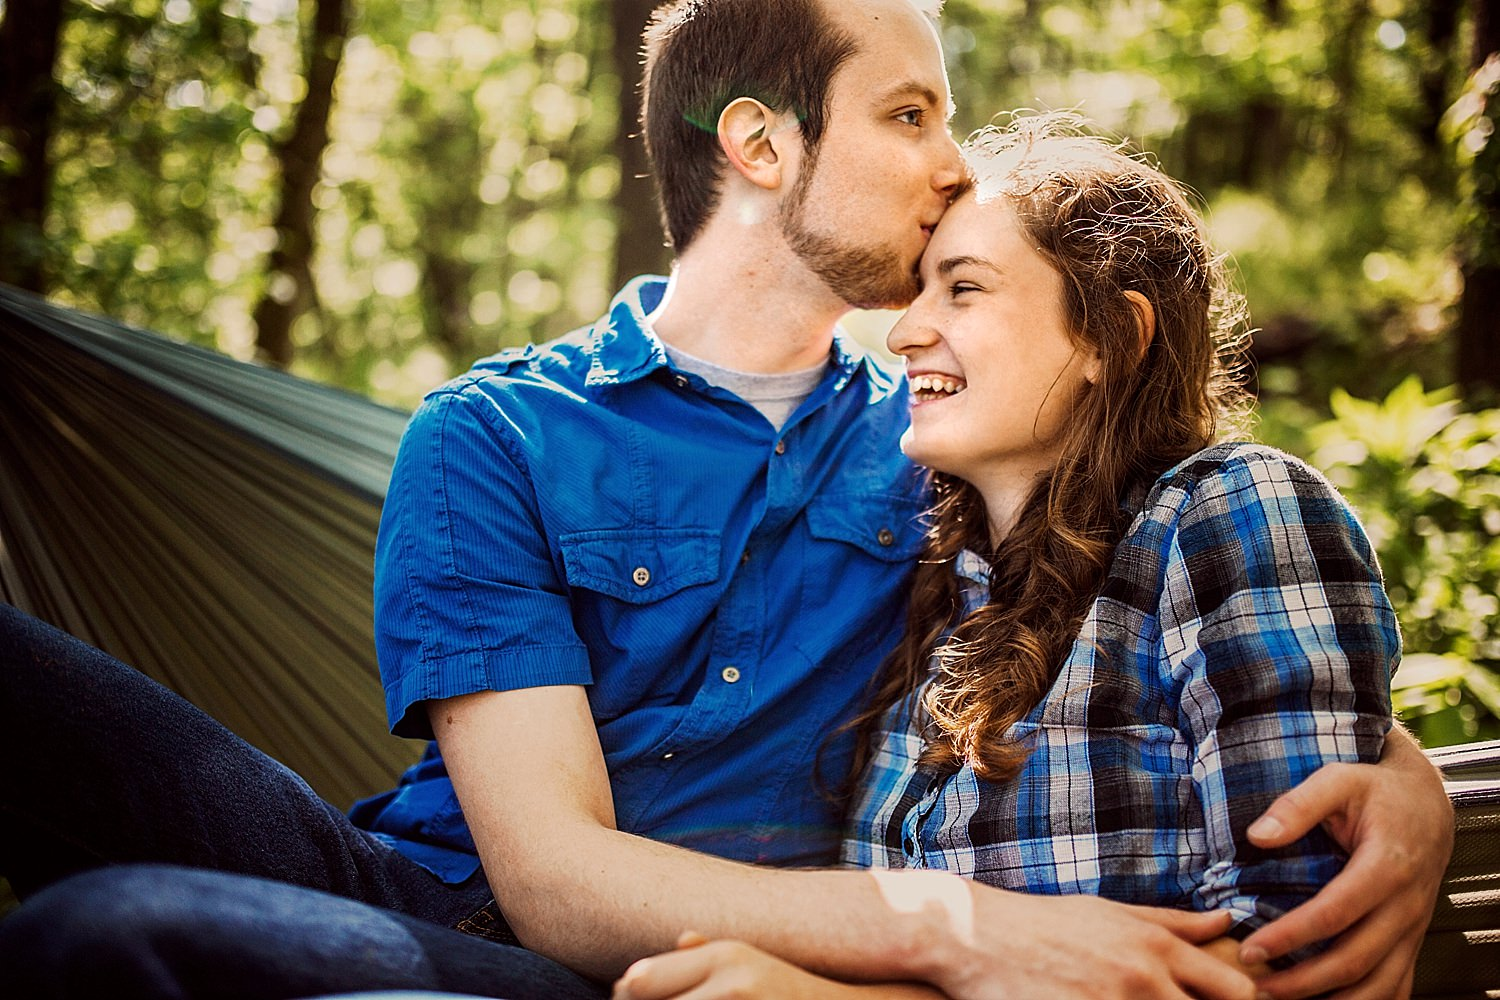 outdoorsy engagement photos taken in creek with hammock